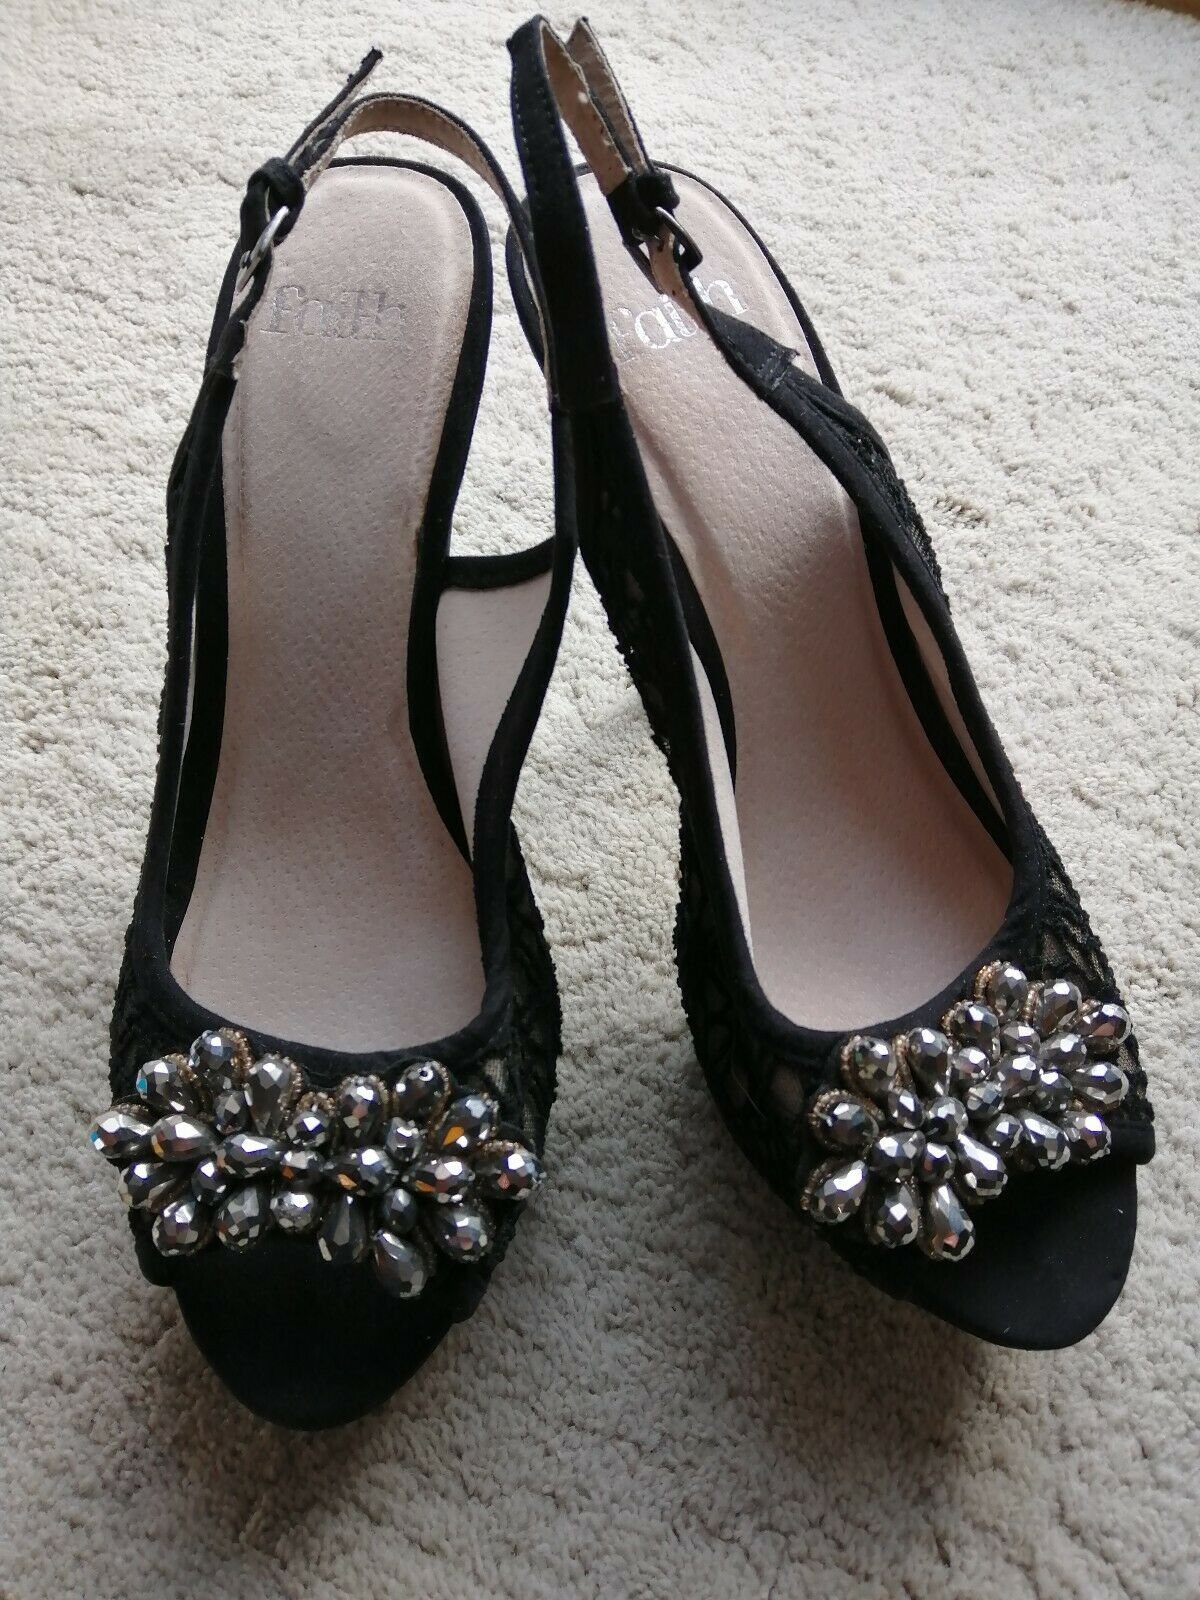 Faith Party   Occasion Open Toe Slingback Jewelled Stiletto Heel Sandals- Size 7